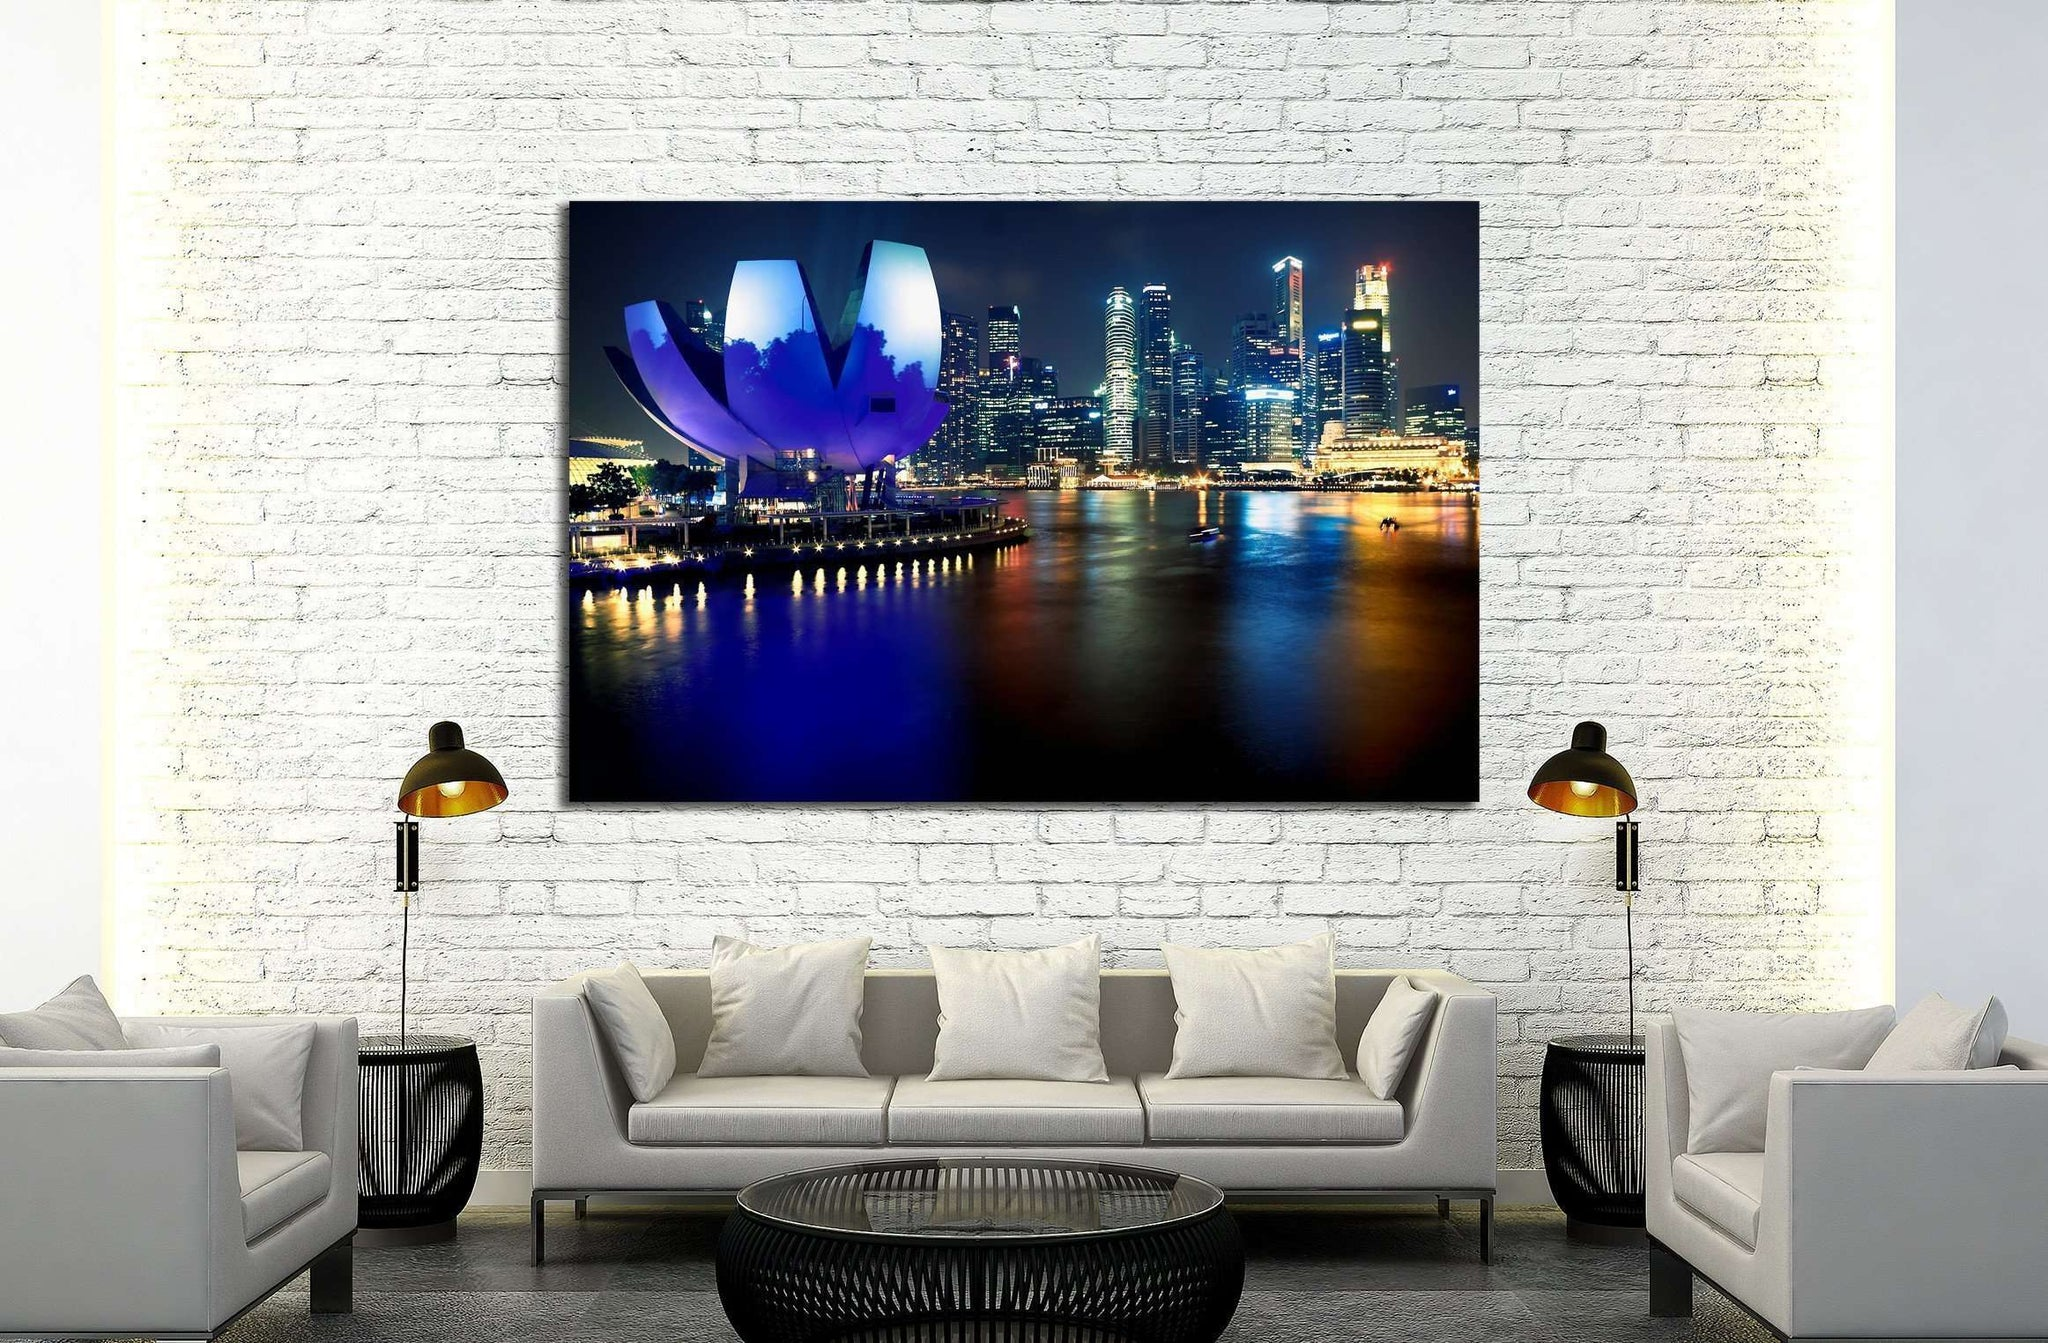 Art Science Museum in Singapore. Attractions at Marina Bay Sands №2272 Ready to Hang Canvas Print